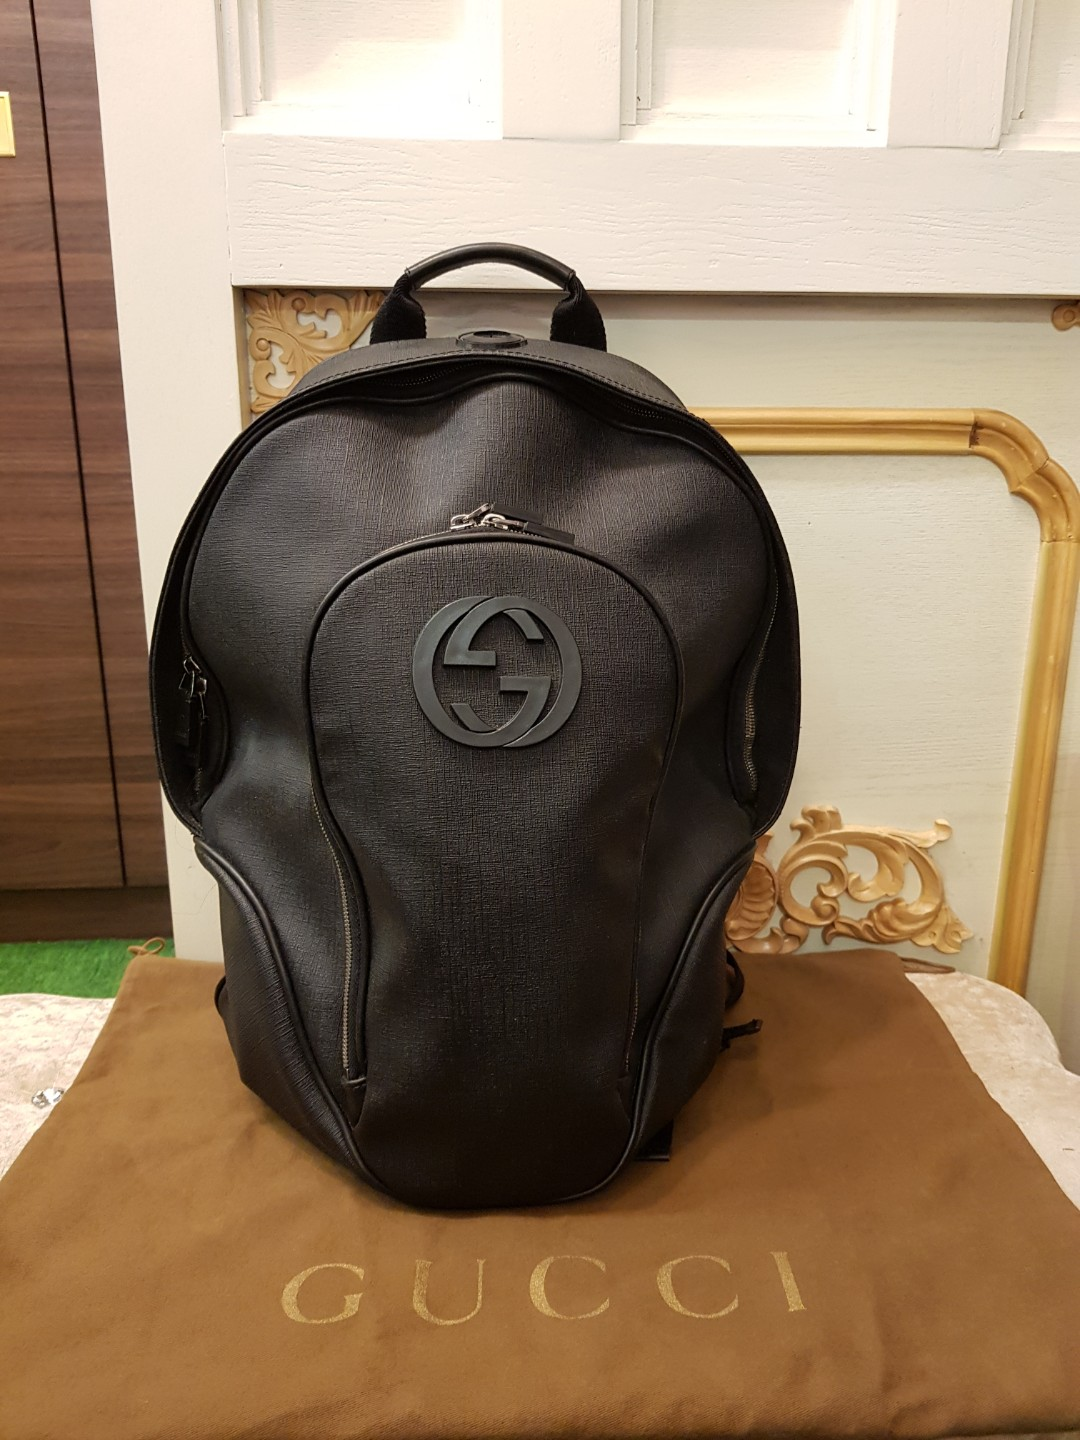 2c5b919a4af 💖100% authentic Gucci backpack 💖